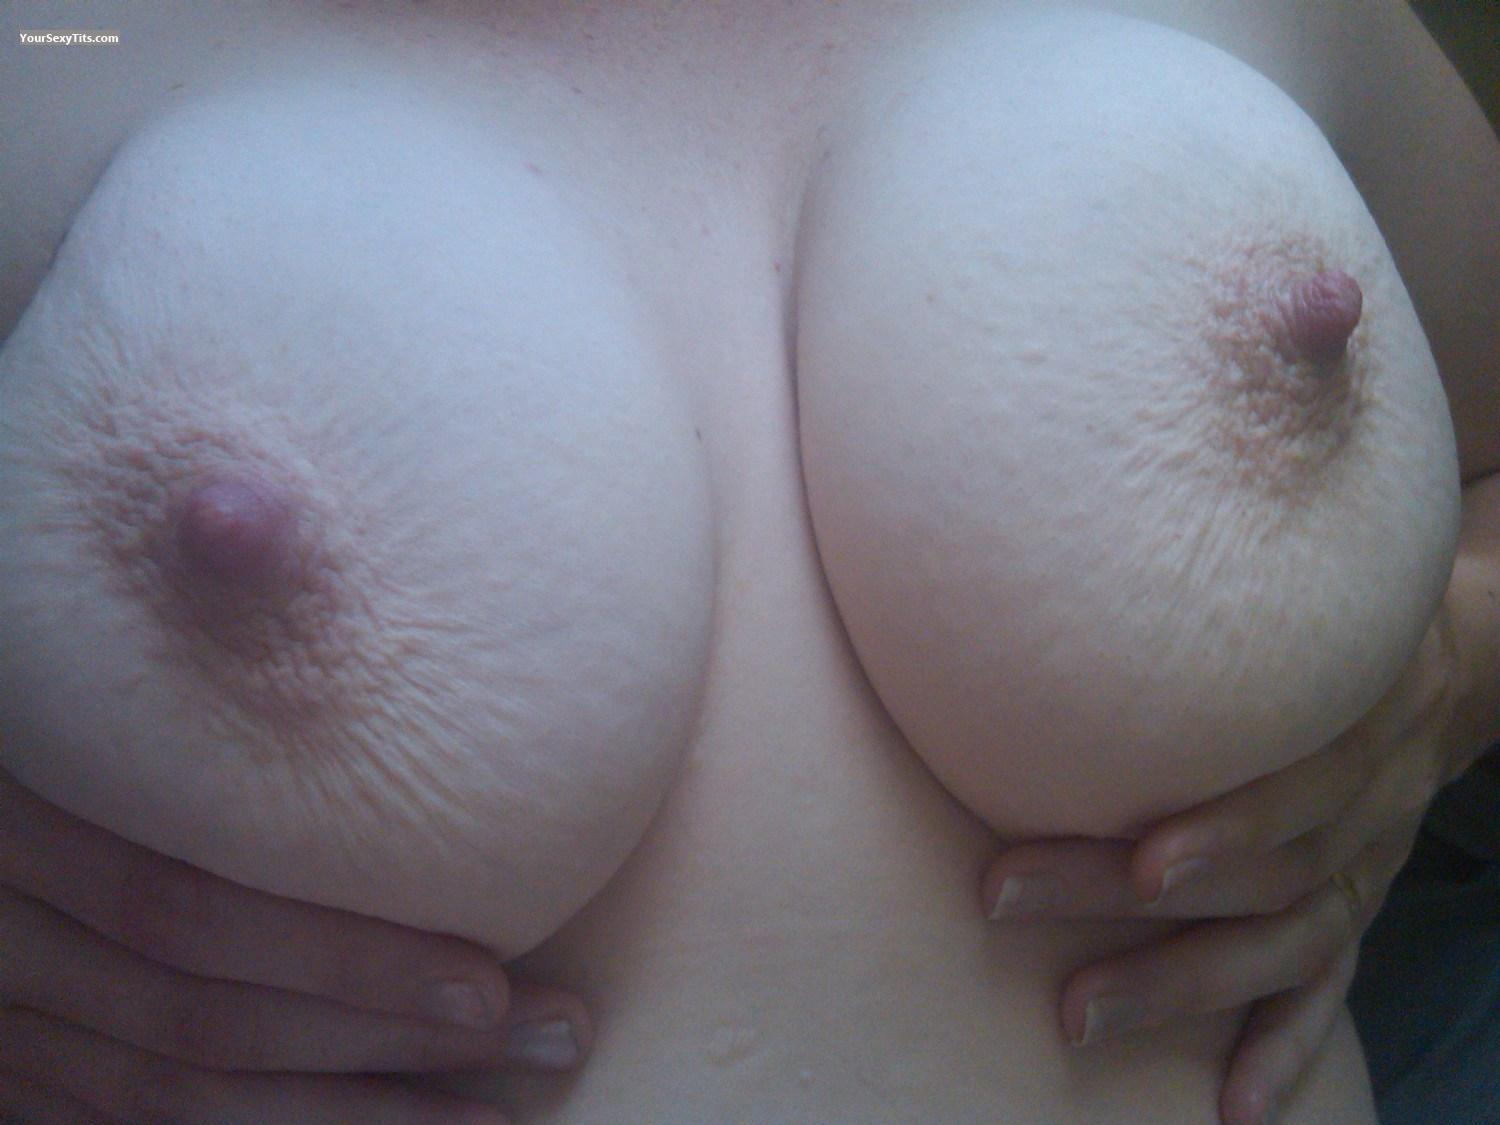 Tit Flash: Medium Tits - Curious Wife from United States